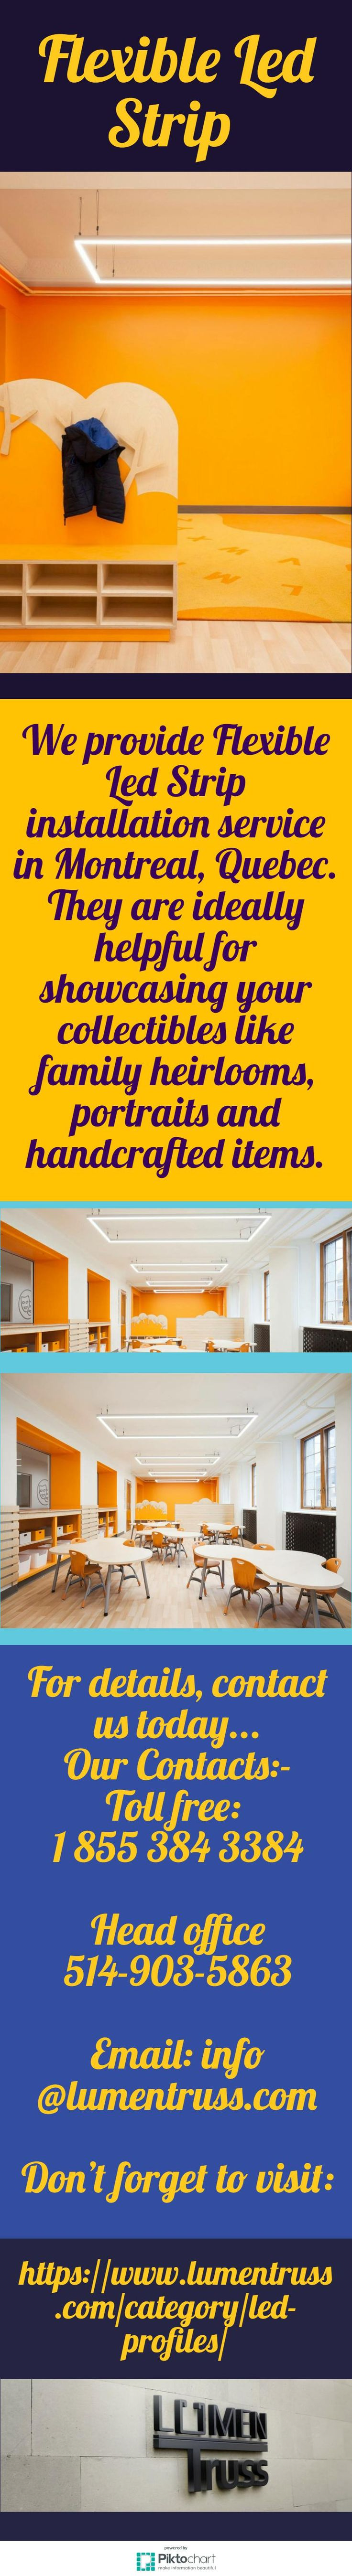 We provide Flexible Led Strip installation service in Montreal, Quebec. They are ideally helpful for showcasing your collectibles like family heirlooms, portraits and handcrafted items. For more details, email us at info@lumentruss.com  https://www.lumentruss.com/category/led-profiles/